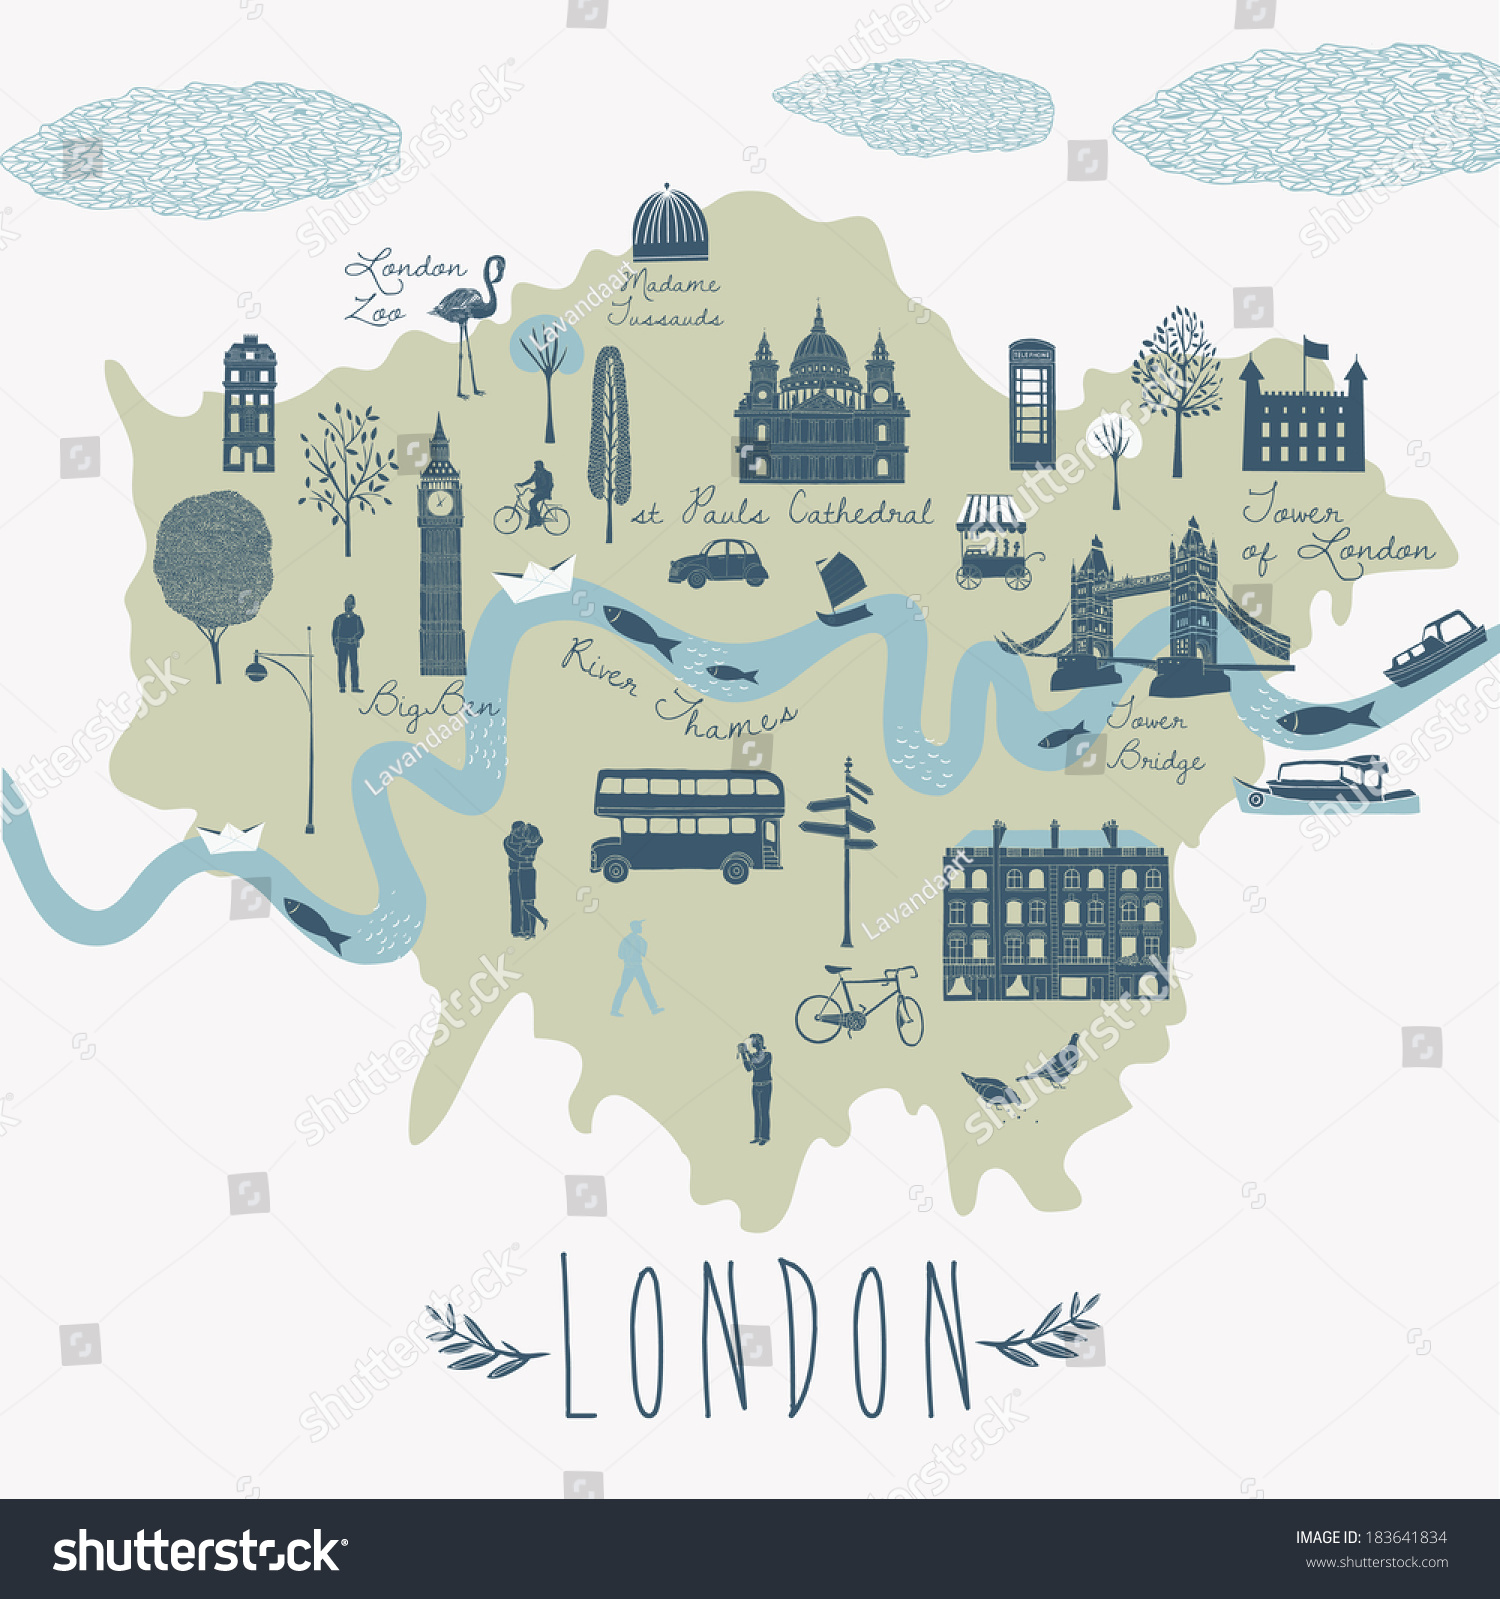 Map London Attractions Vector 183641834 Shutterstock – Map Of London Tourist Sites